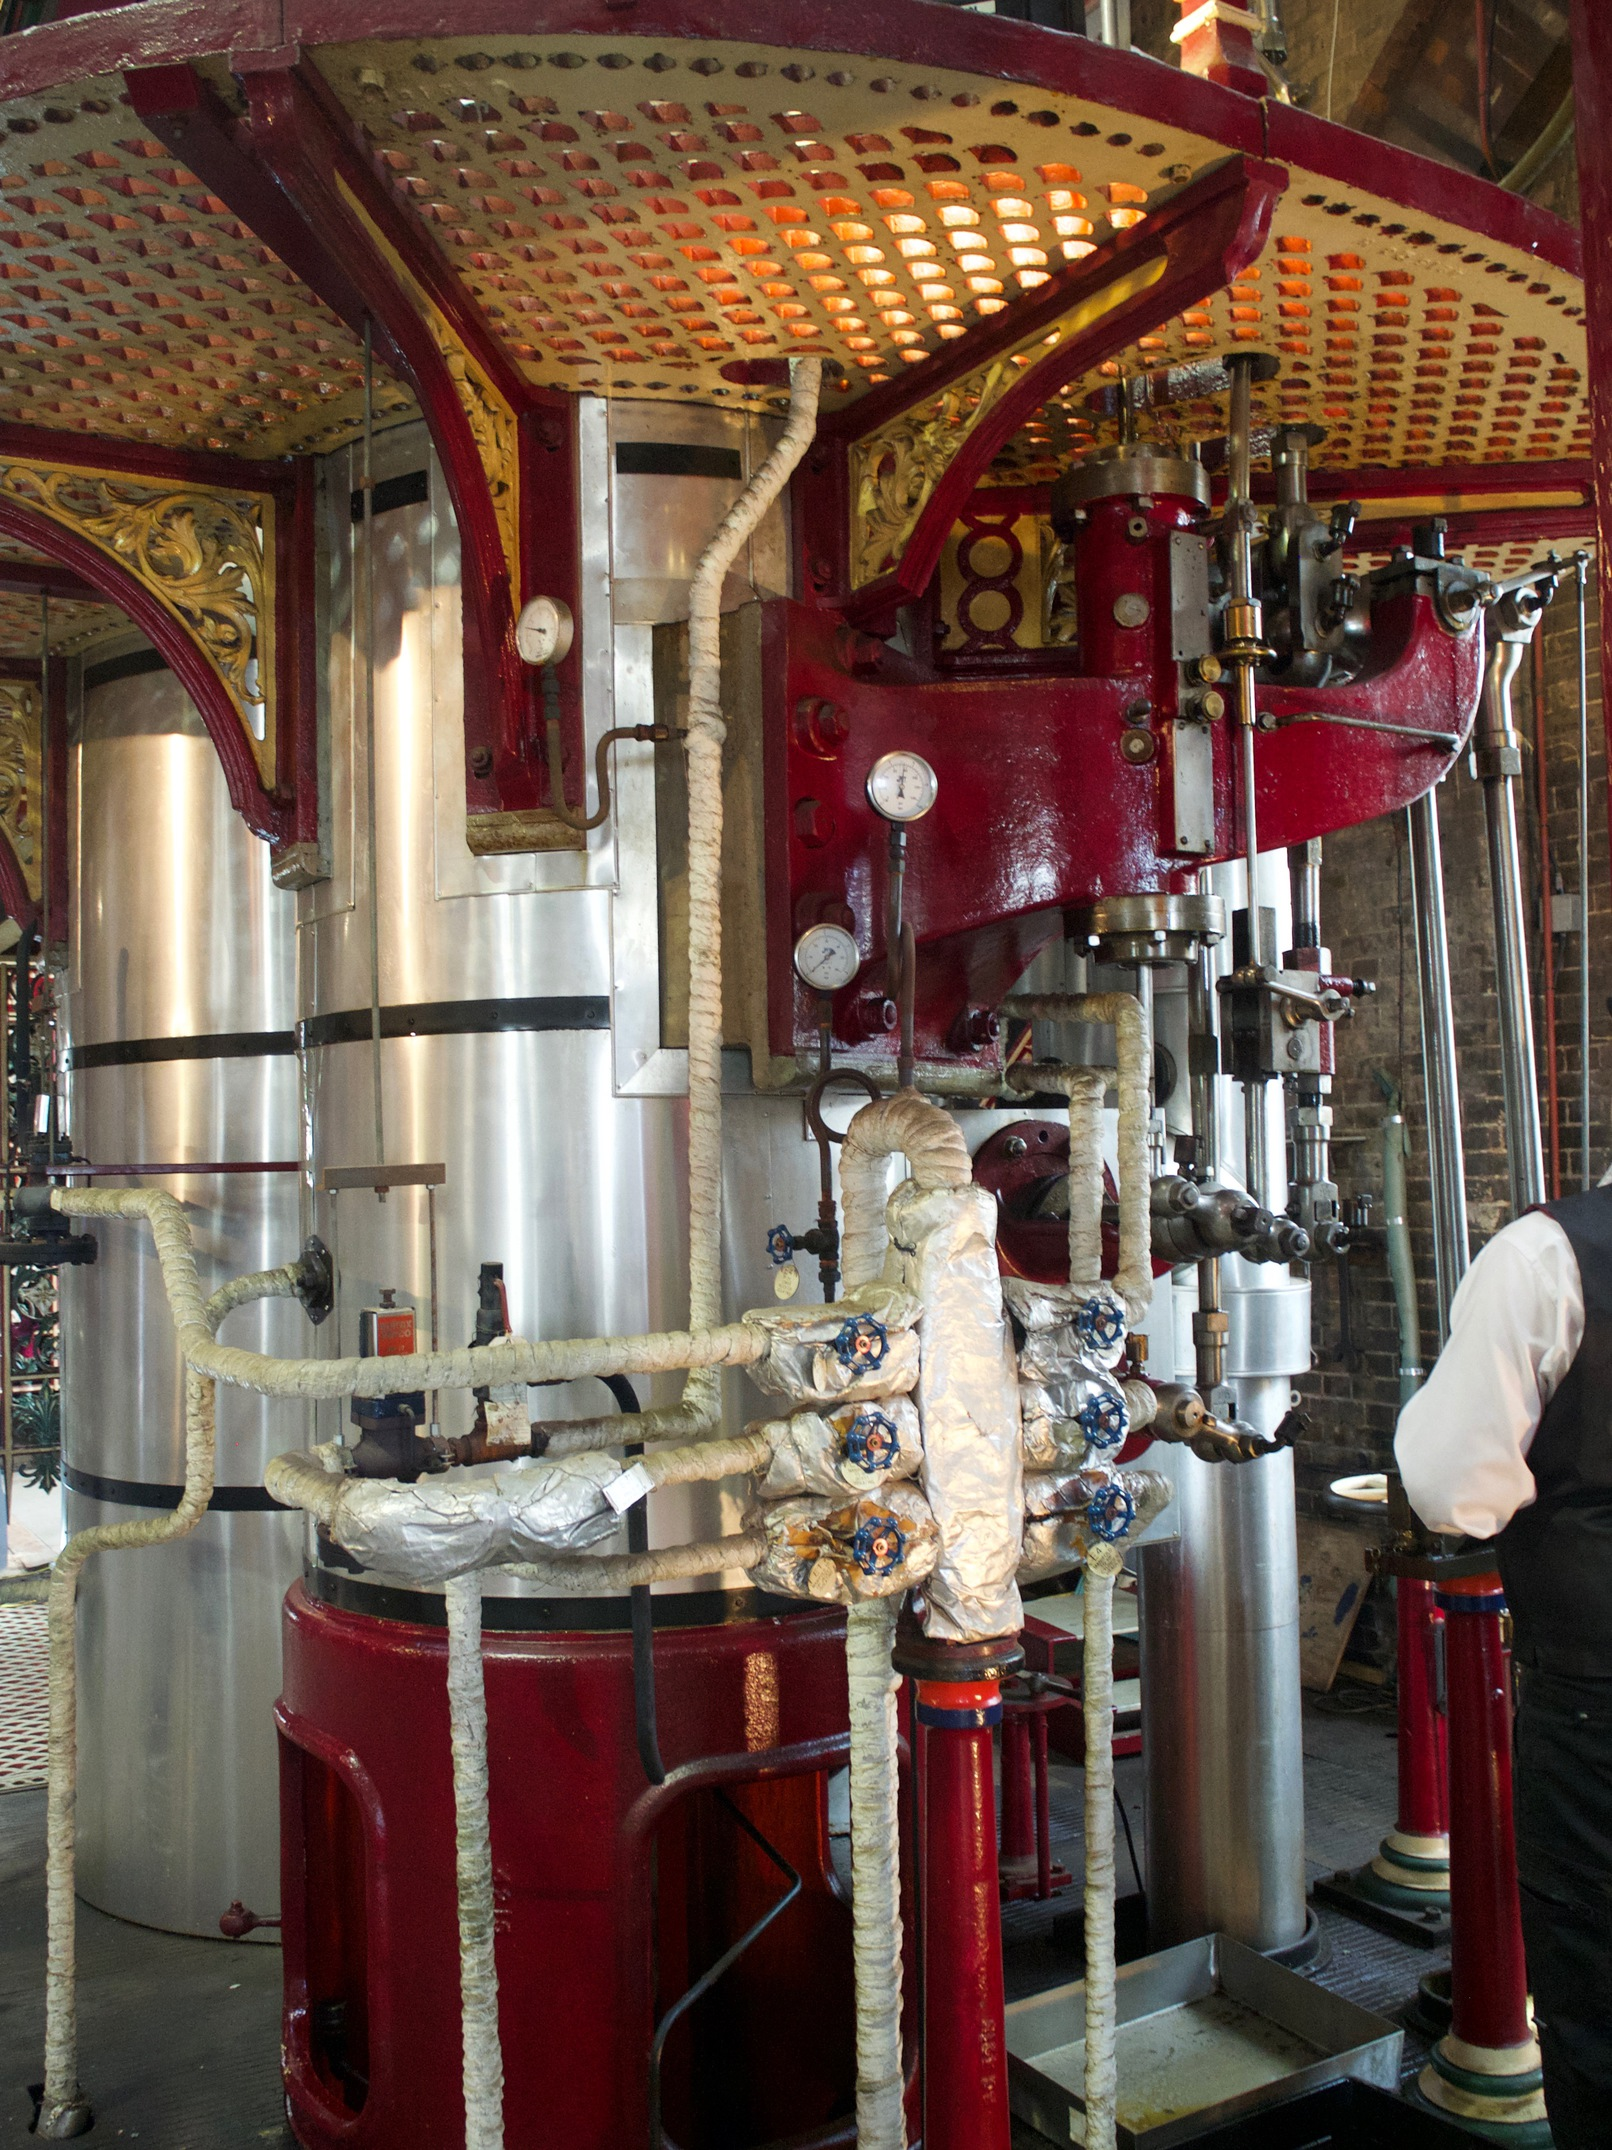 A series of pipes and tubes surrounding cylindrical boilers. Some of the metalwork has red and gold decorations.